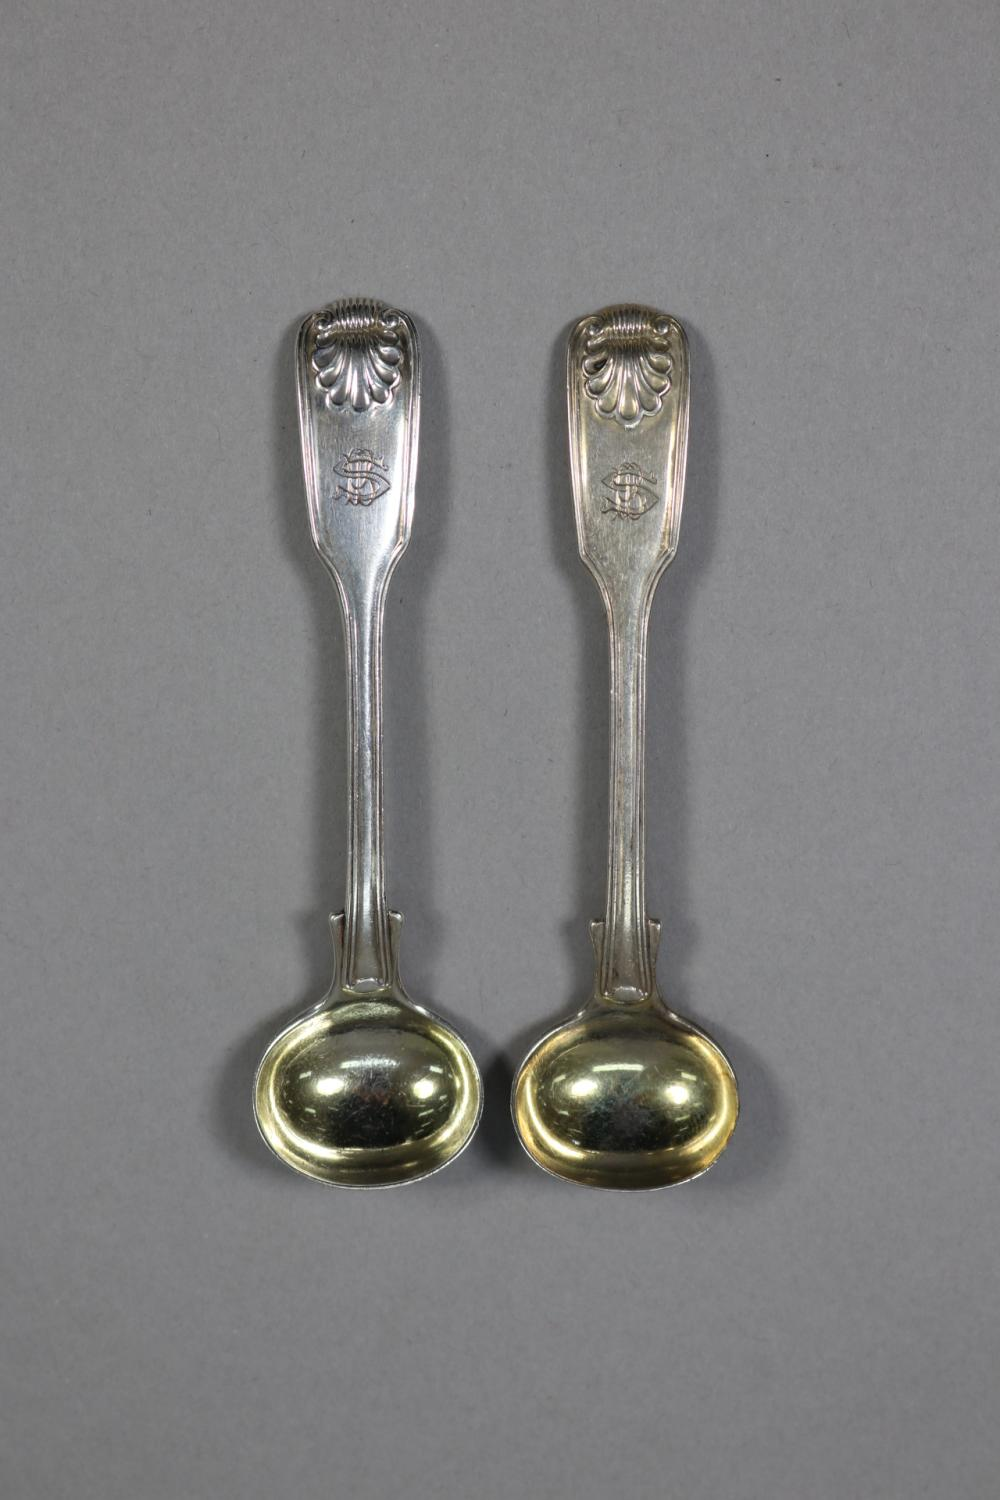 Pair of antique hallmarked sterling silver Fiddle, Thread and Shell pattern condiment spoons, London, 1821 - 1822, William Eley & William Fearn, approx 45 grams (2)